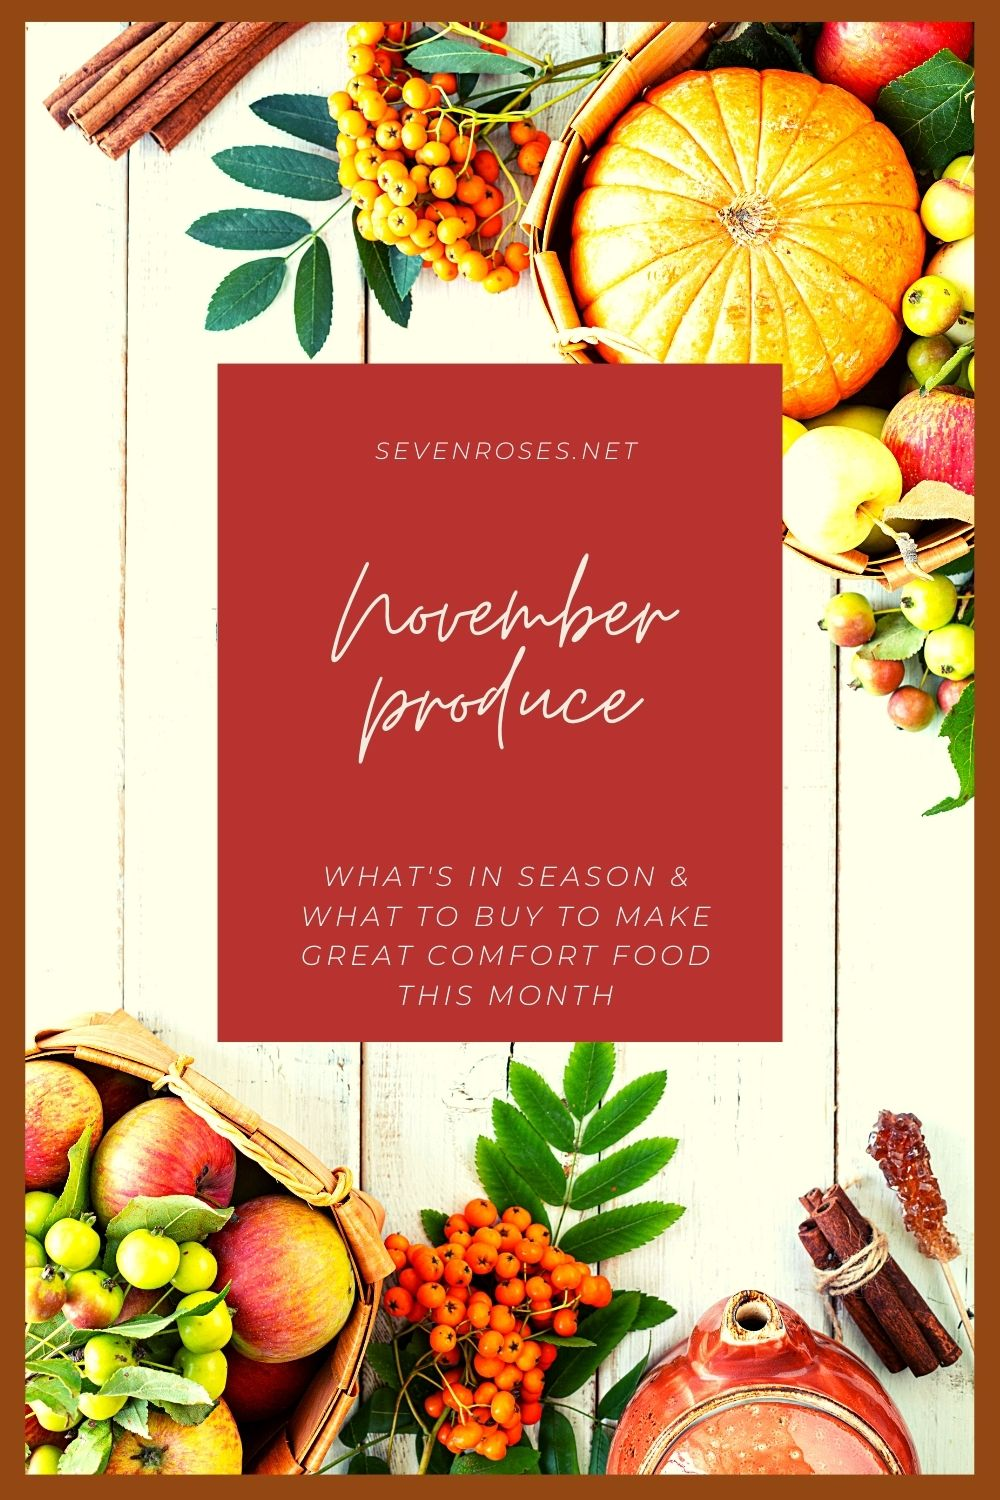 November: what produce is in season?